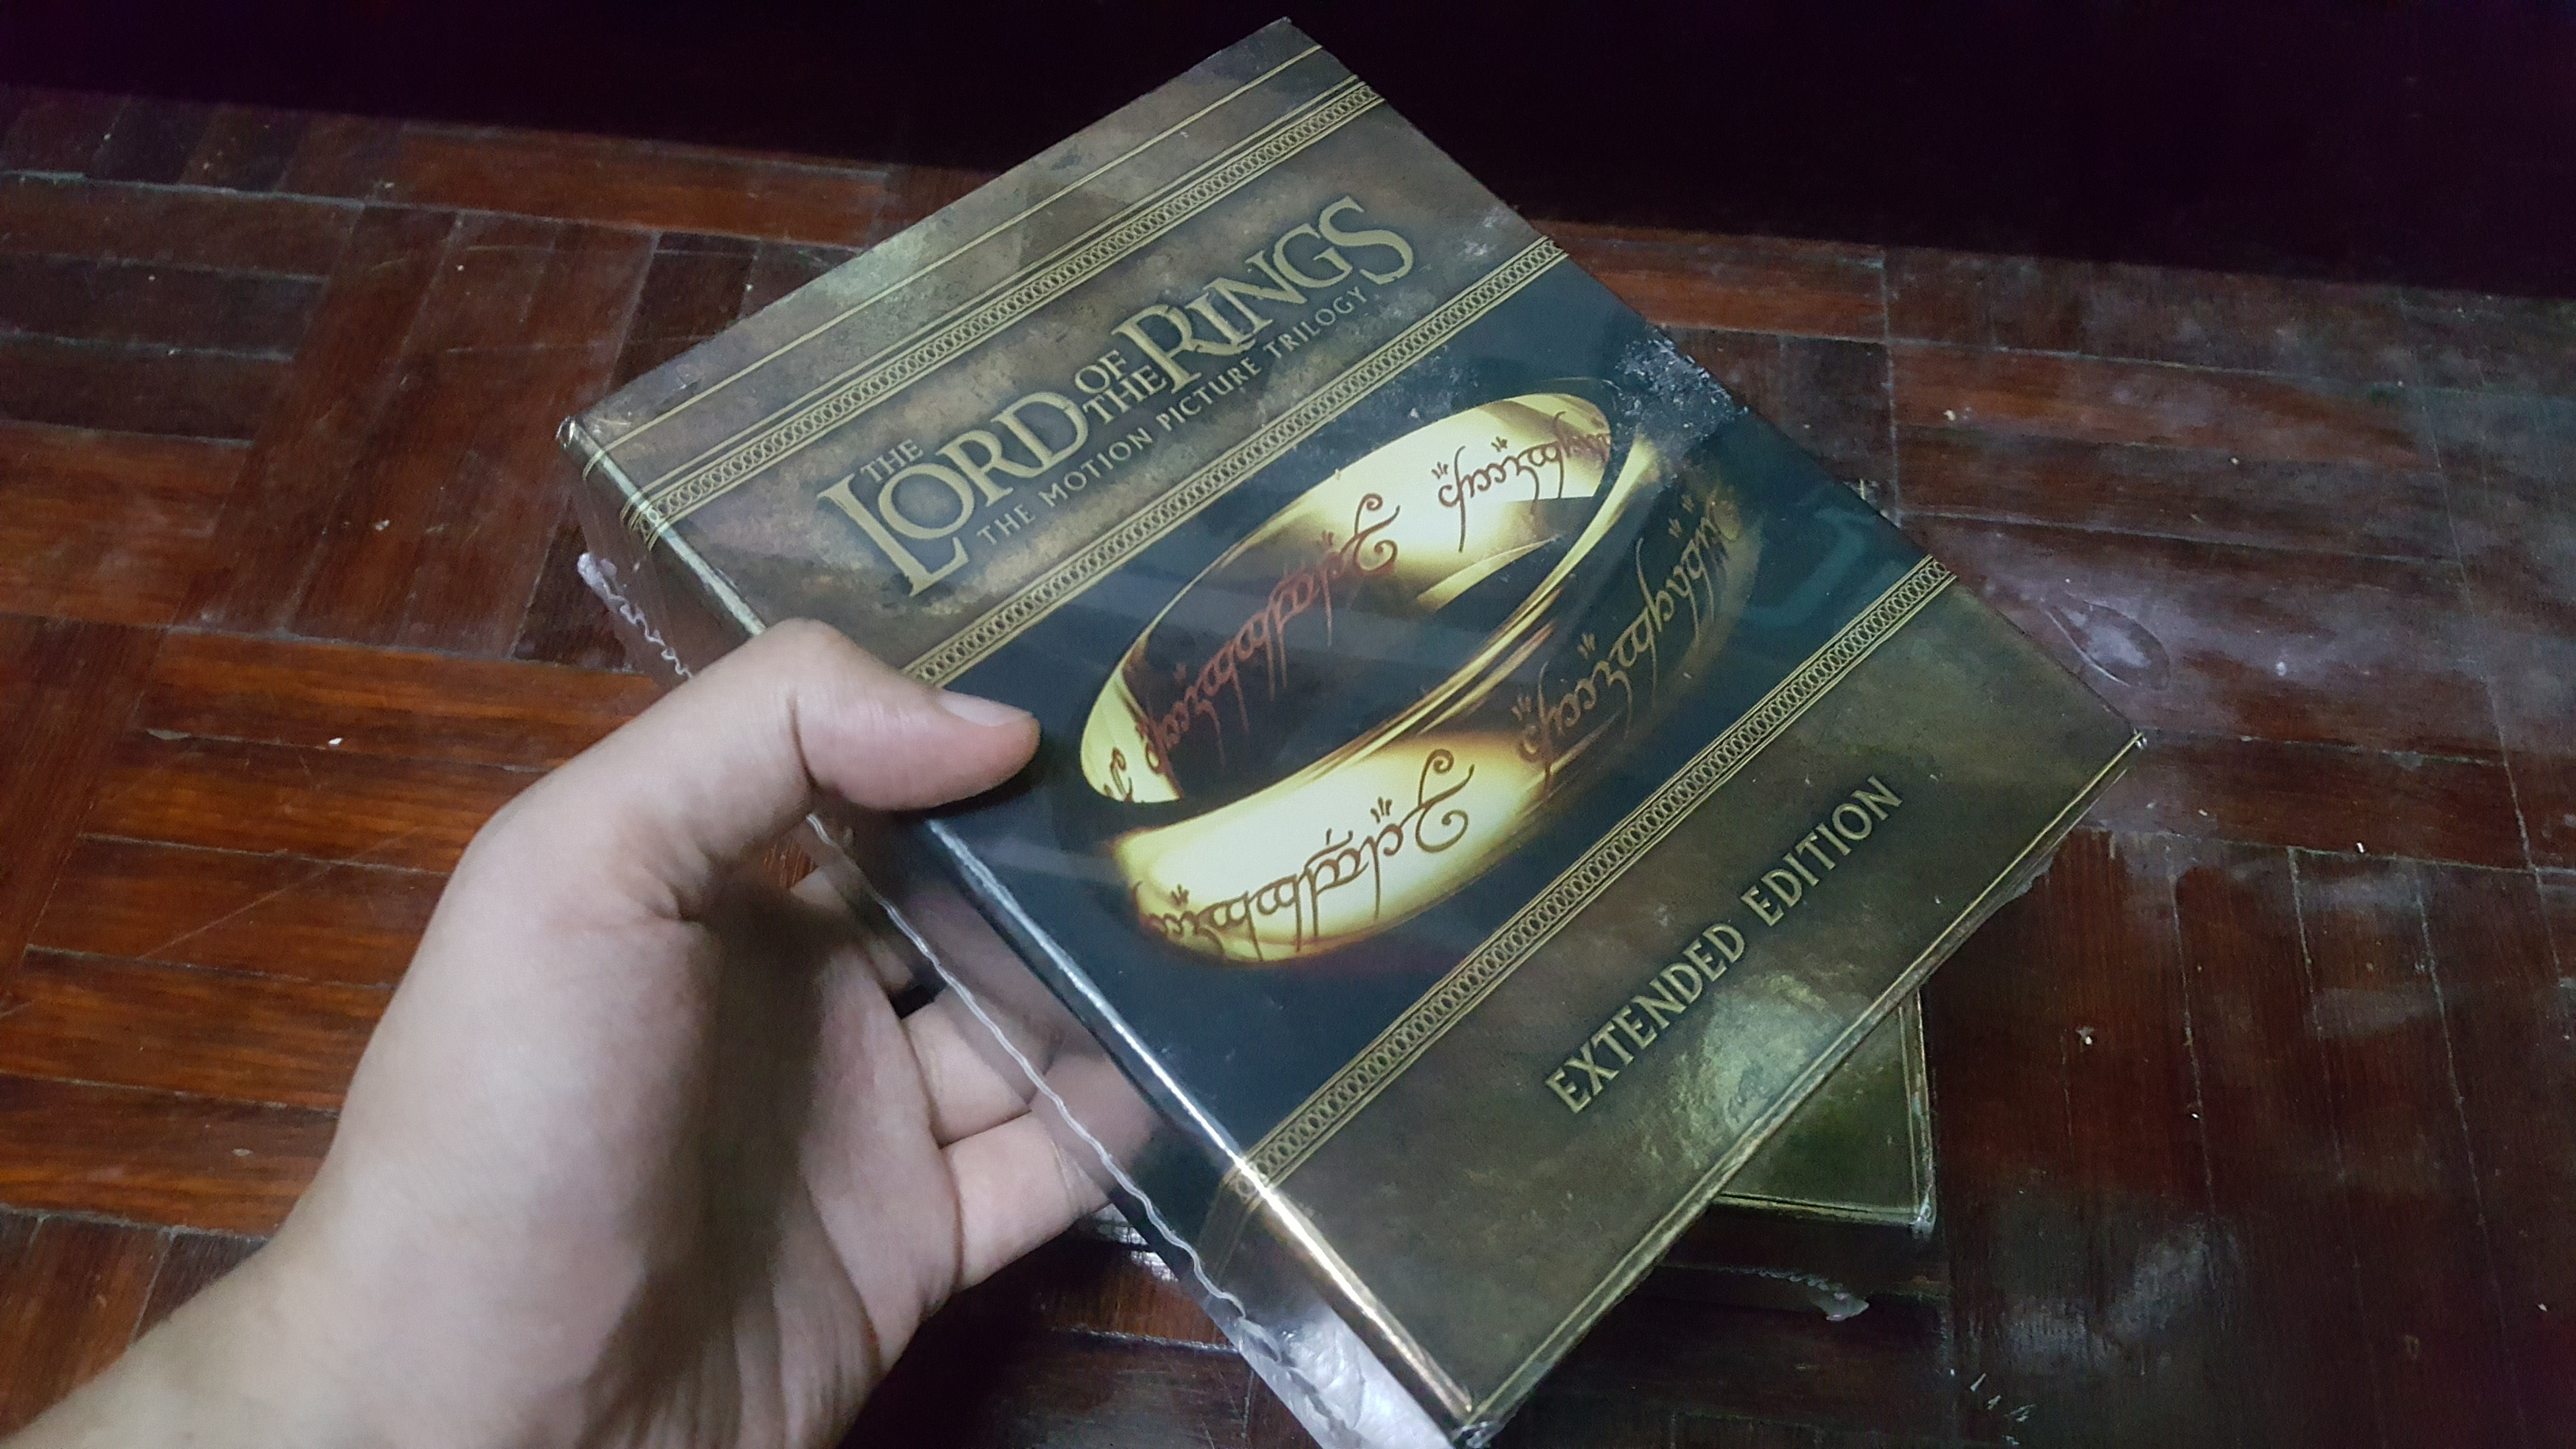 The Lord of the Rings: The Motion Picture Trilogy original blu ray new